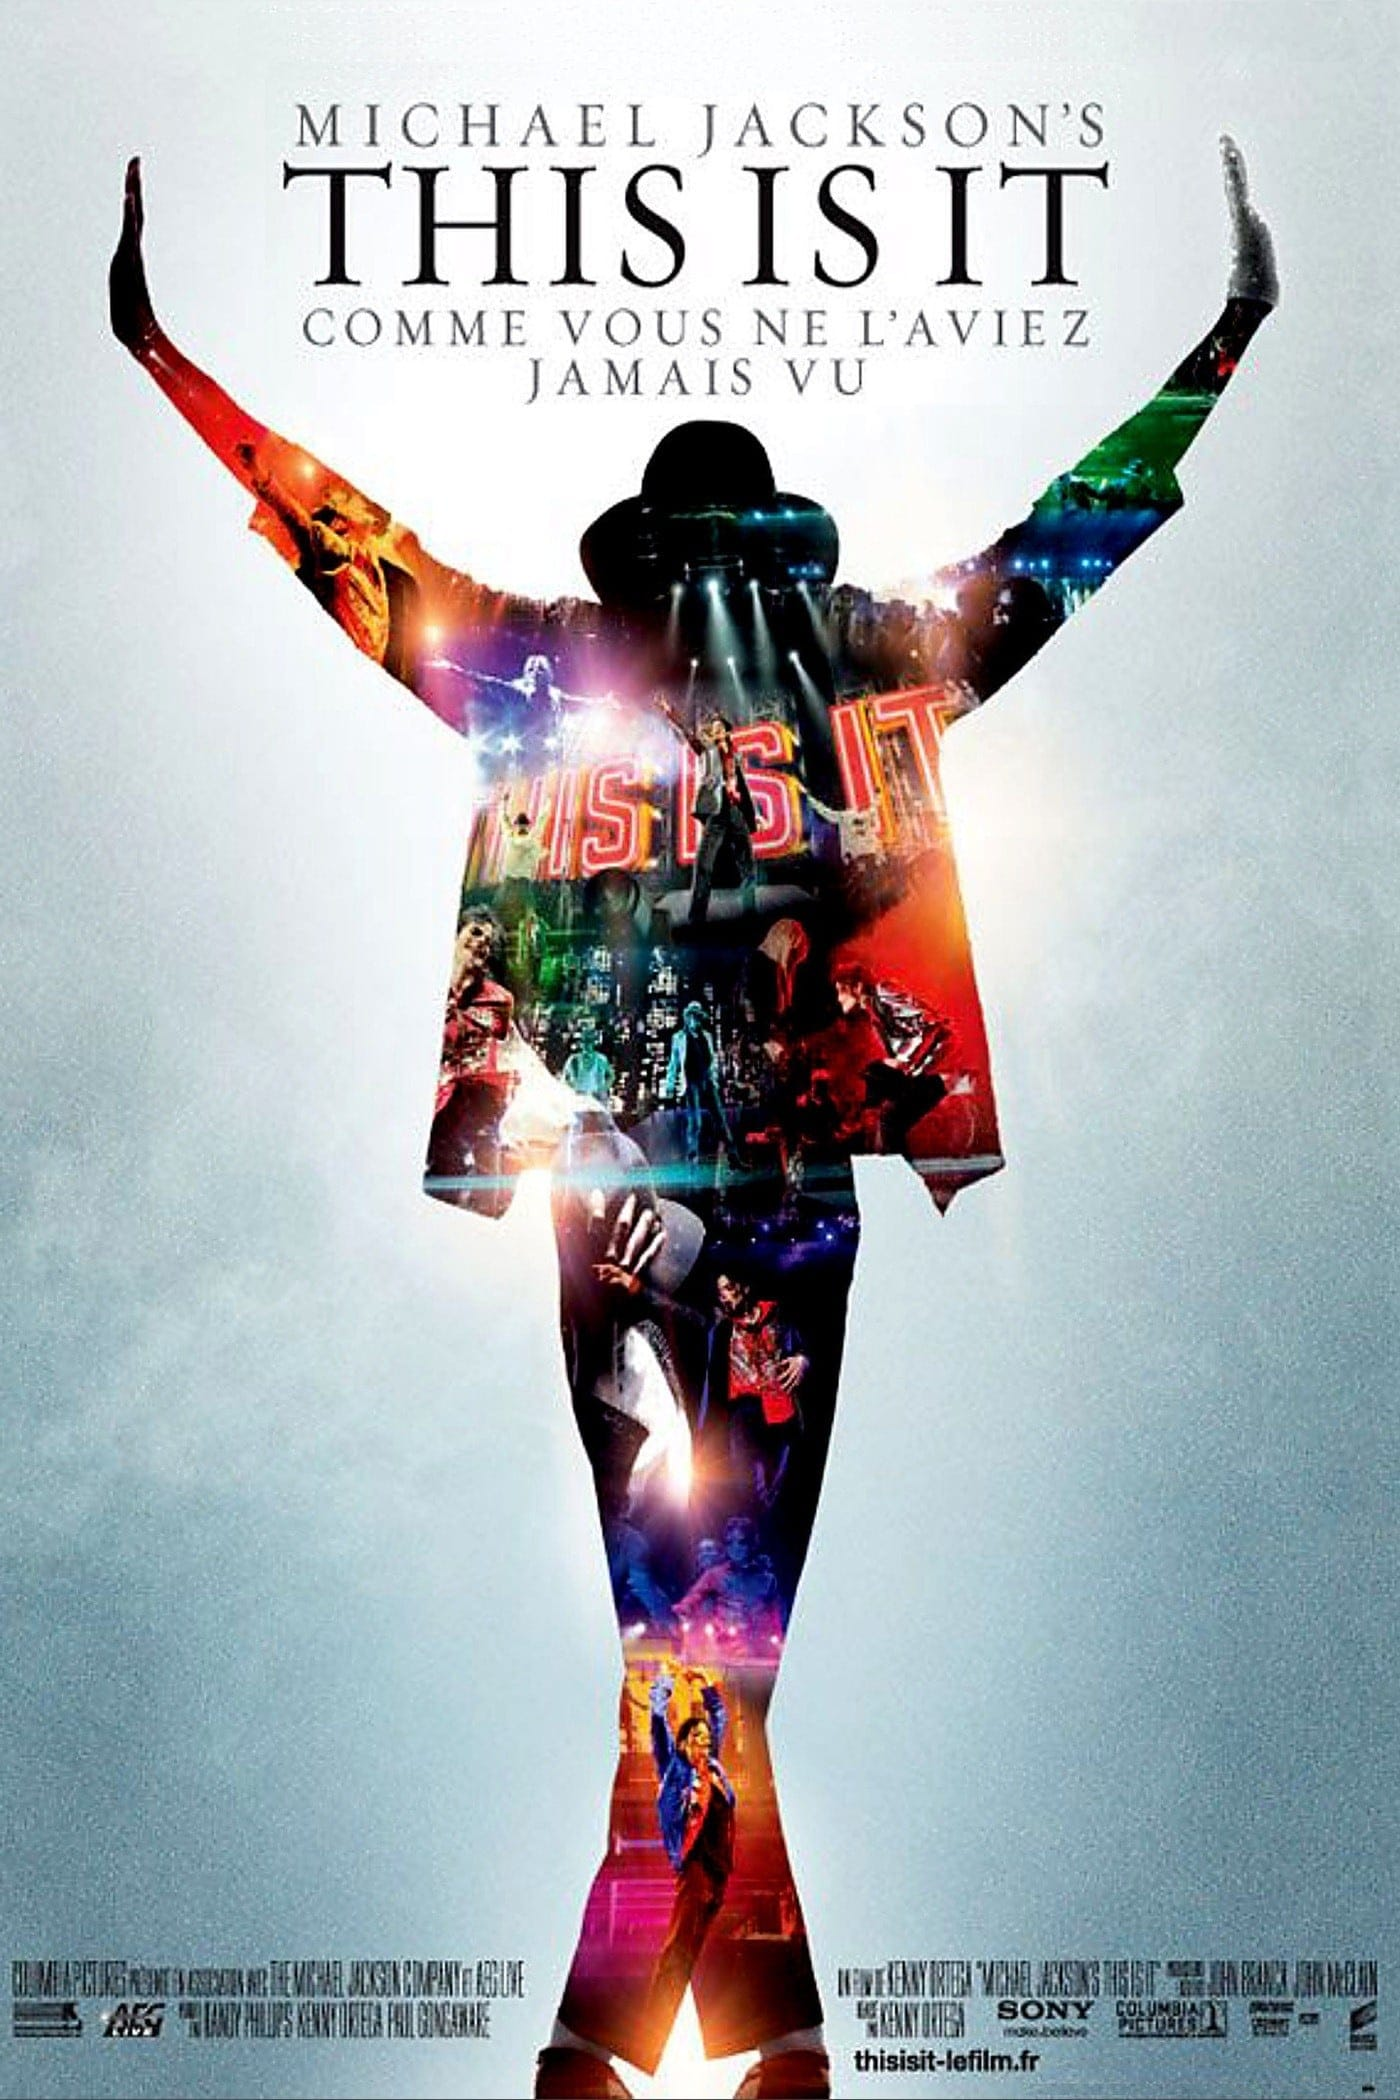 Michael Jackson's – This is it